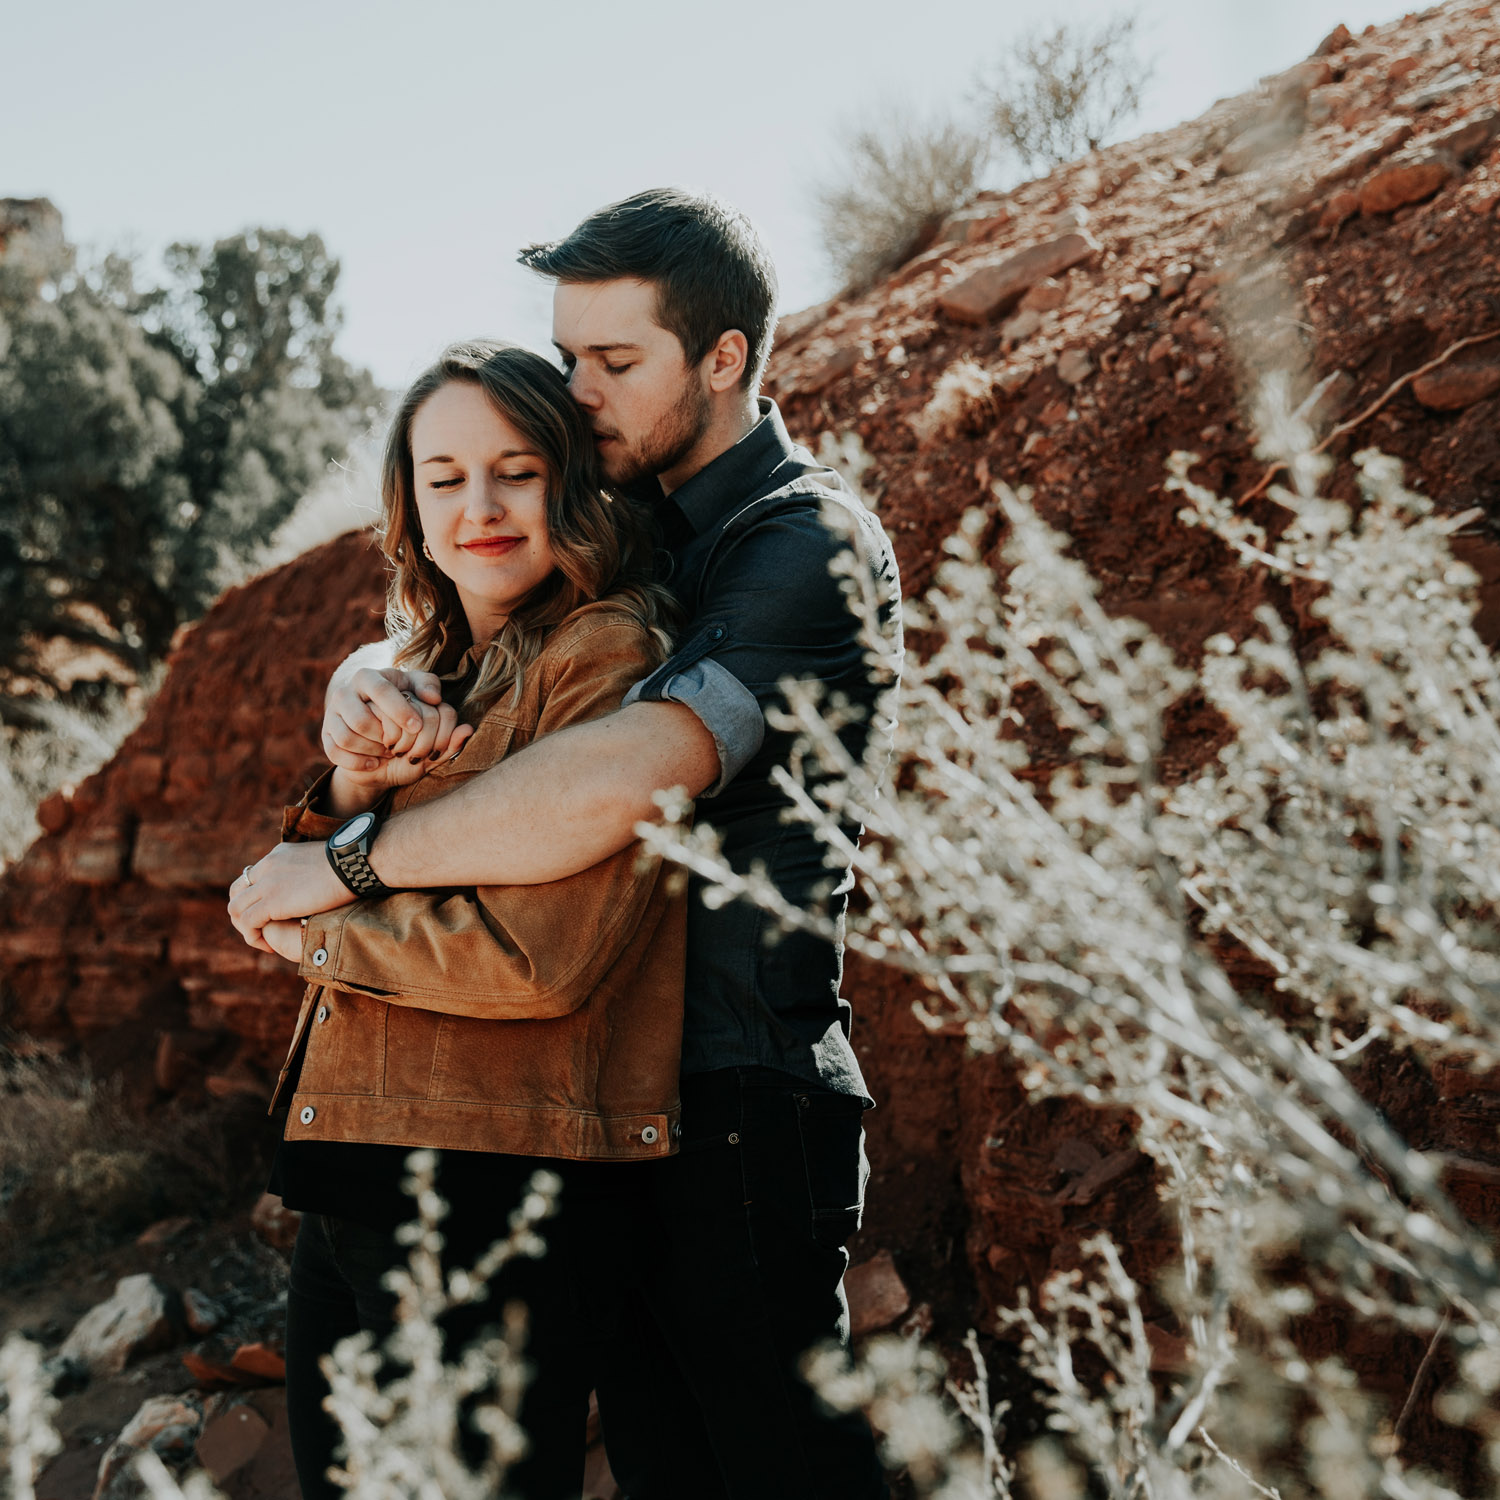 destination wedding photographers atlanta elopement photographer utah engagement photography atalie ann photo _1020.jpg